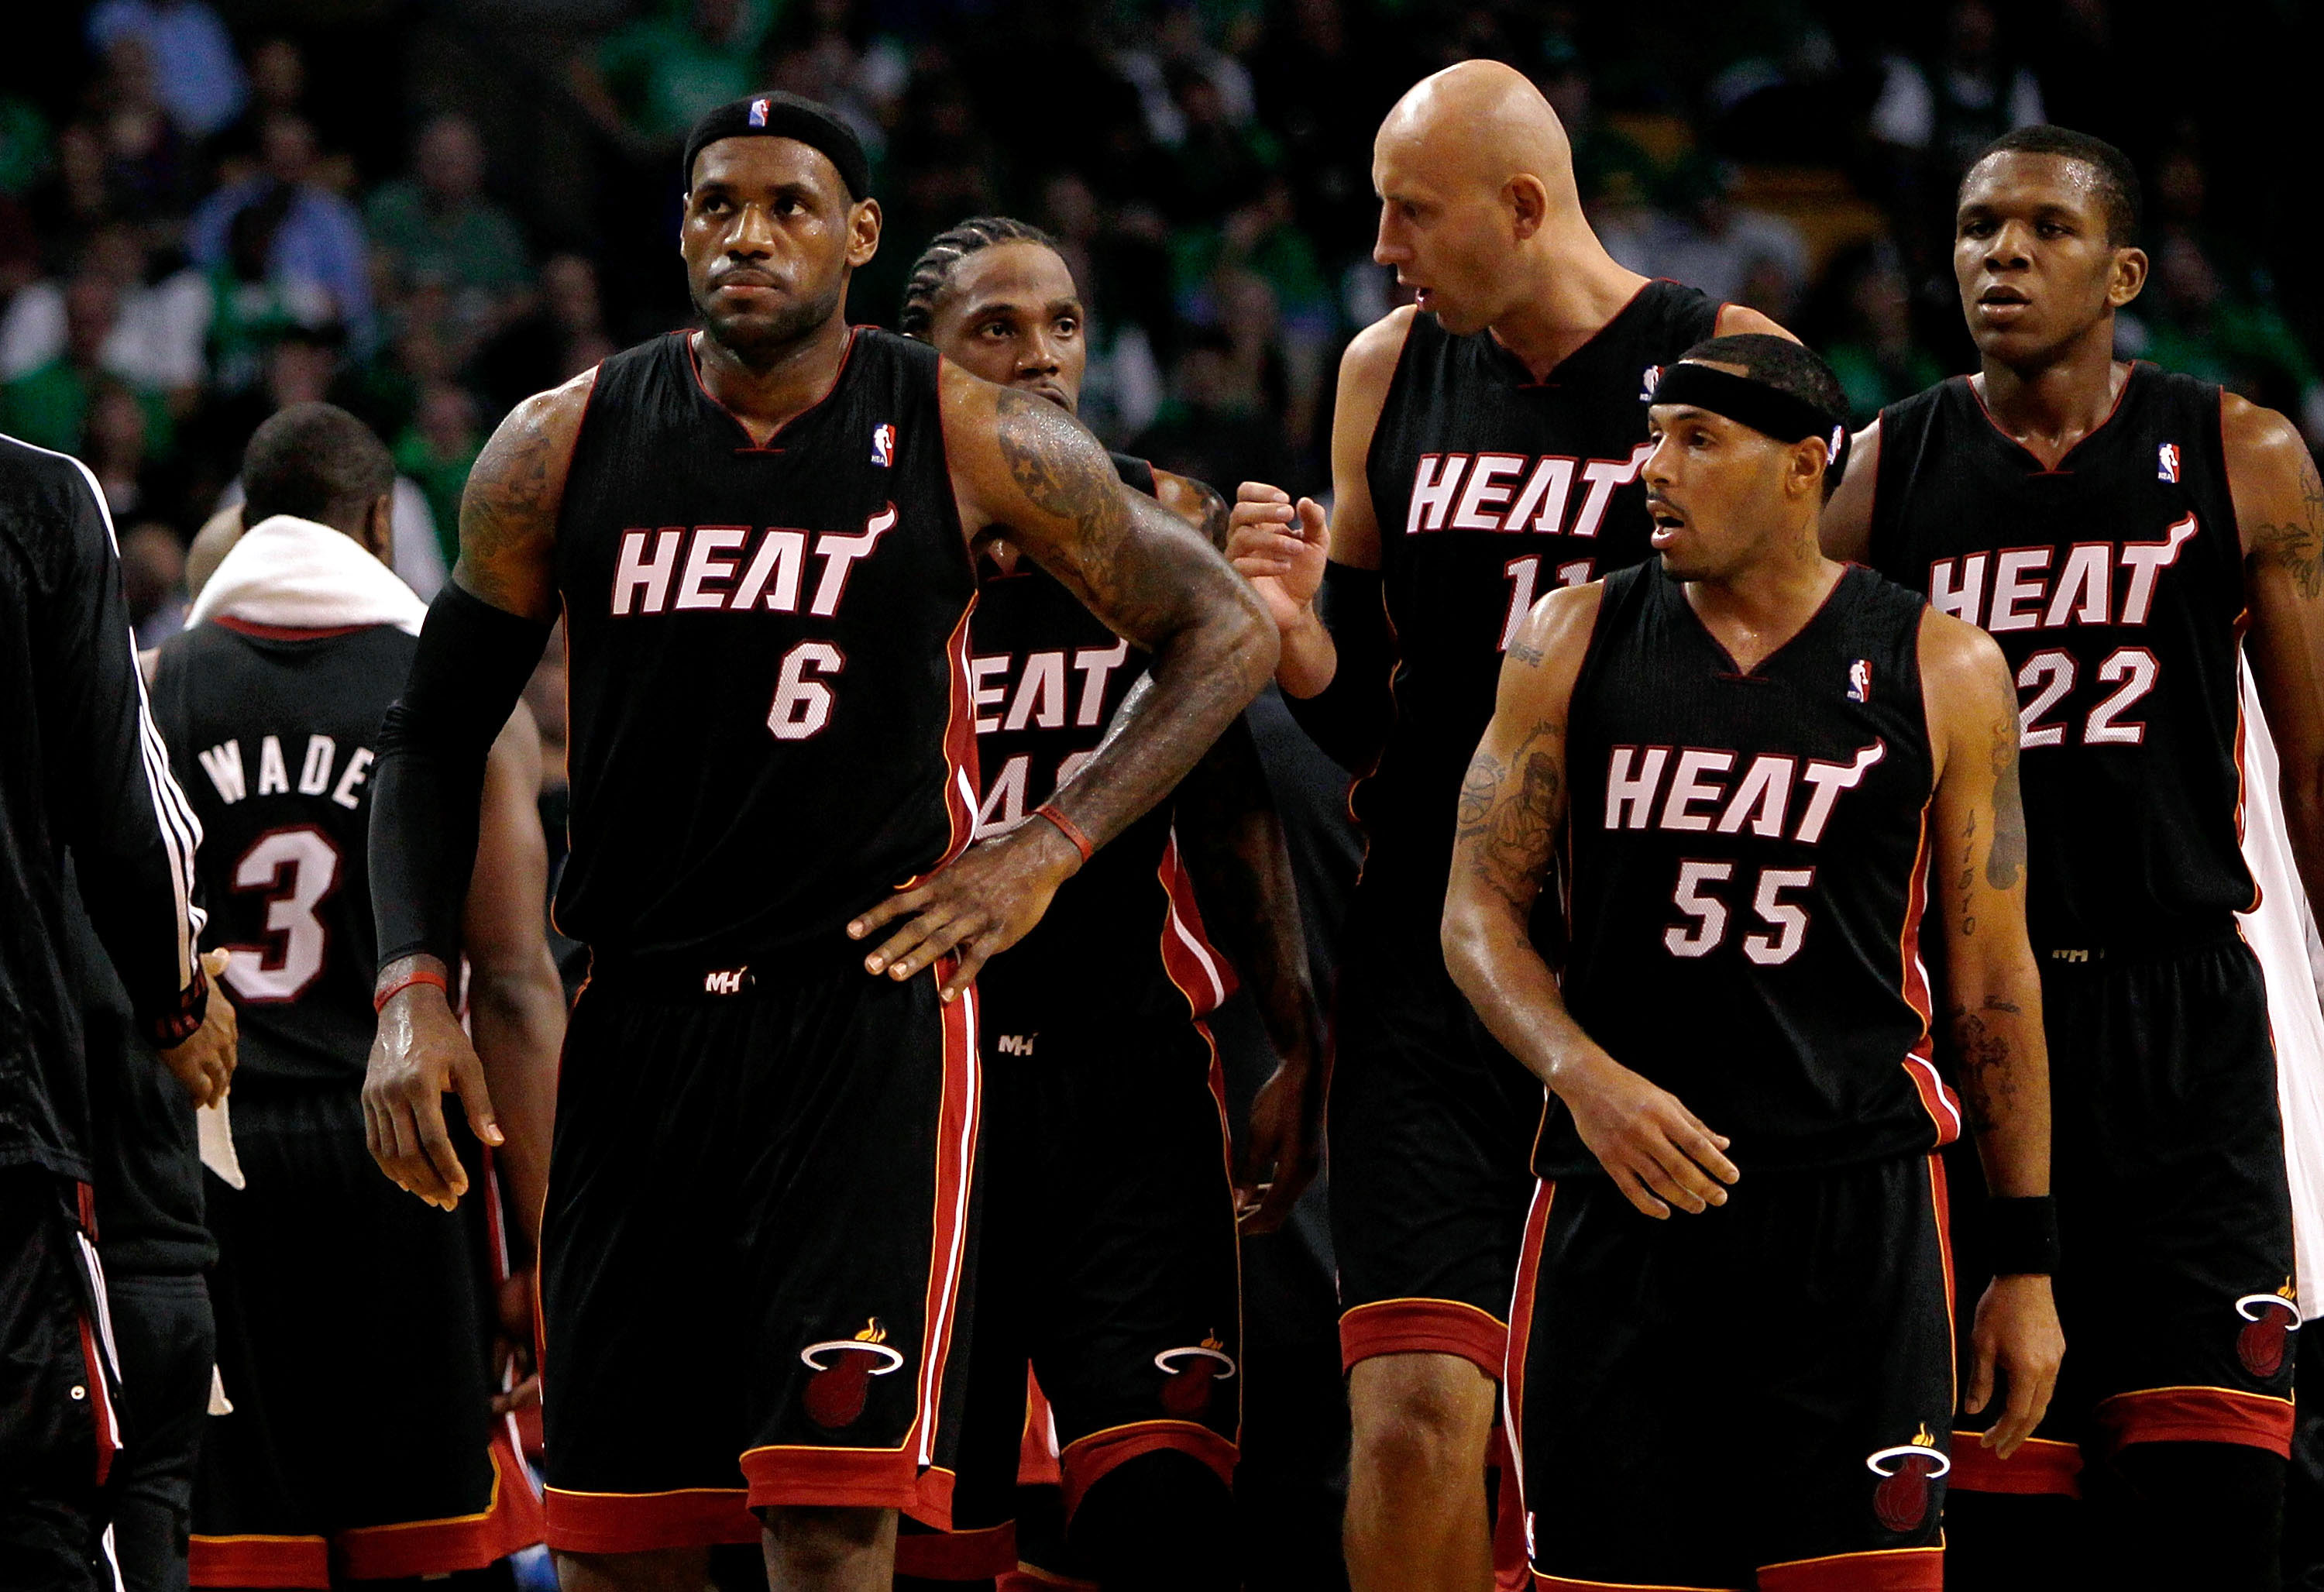 BOSTON, MA - OCTOBER 26: LeBron James #6 of the Miami Heat leads his team onto the court after a time out during a game against the Boston Celtics at the TD Banknorth Garden on October 26, 2010 in Boston, Massachusetts. NOTE TO USER: User expressly acknow